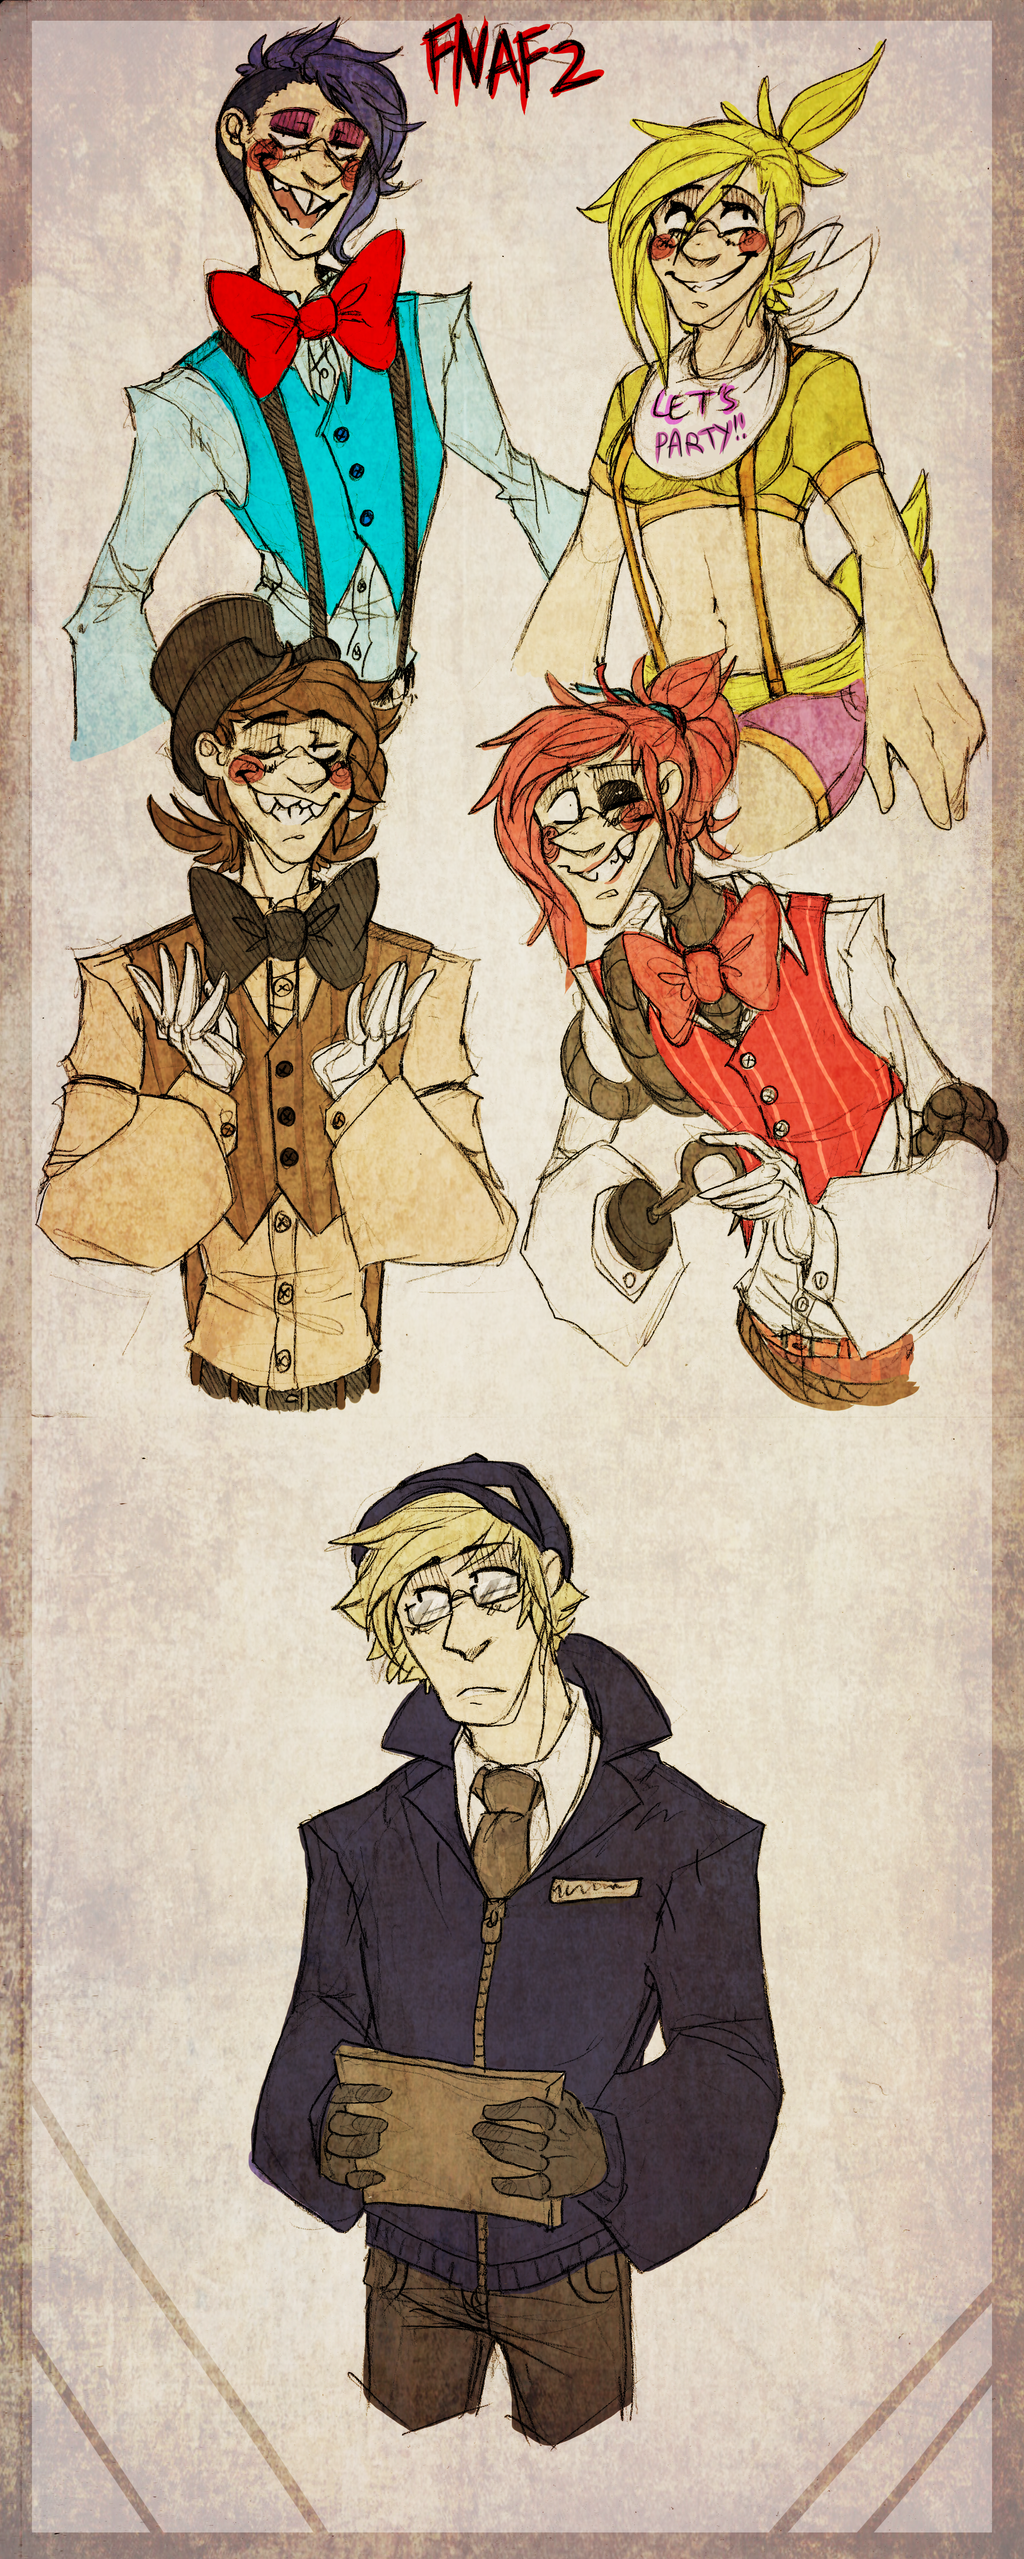 Angle fox and the foxy pirate